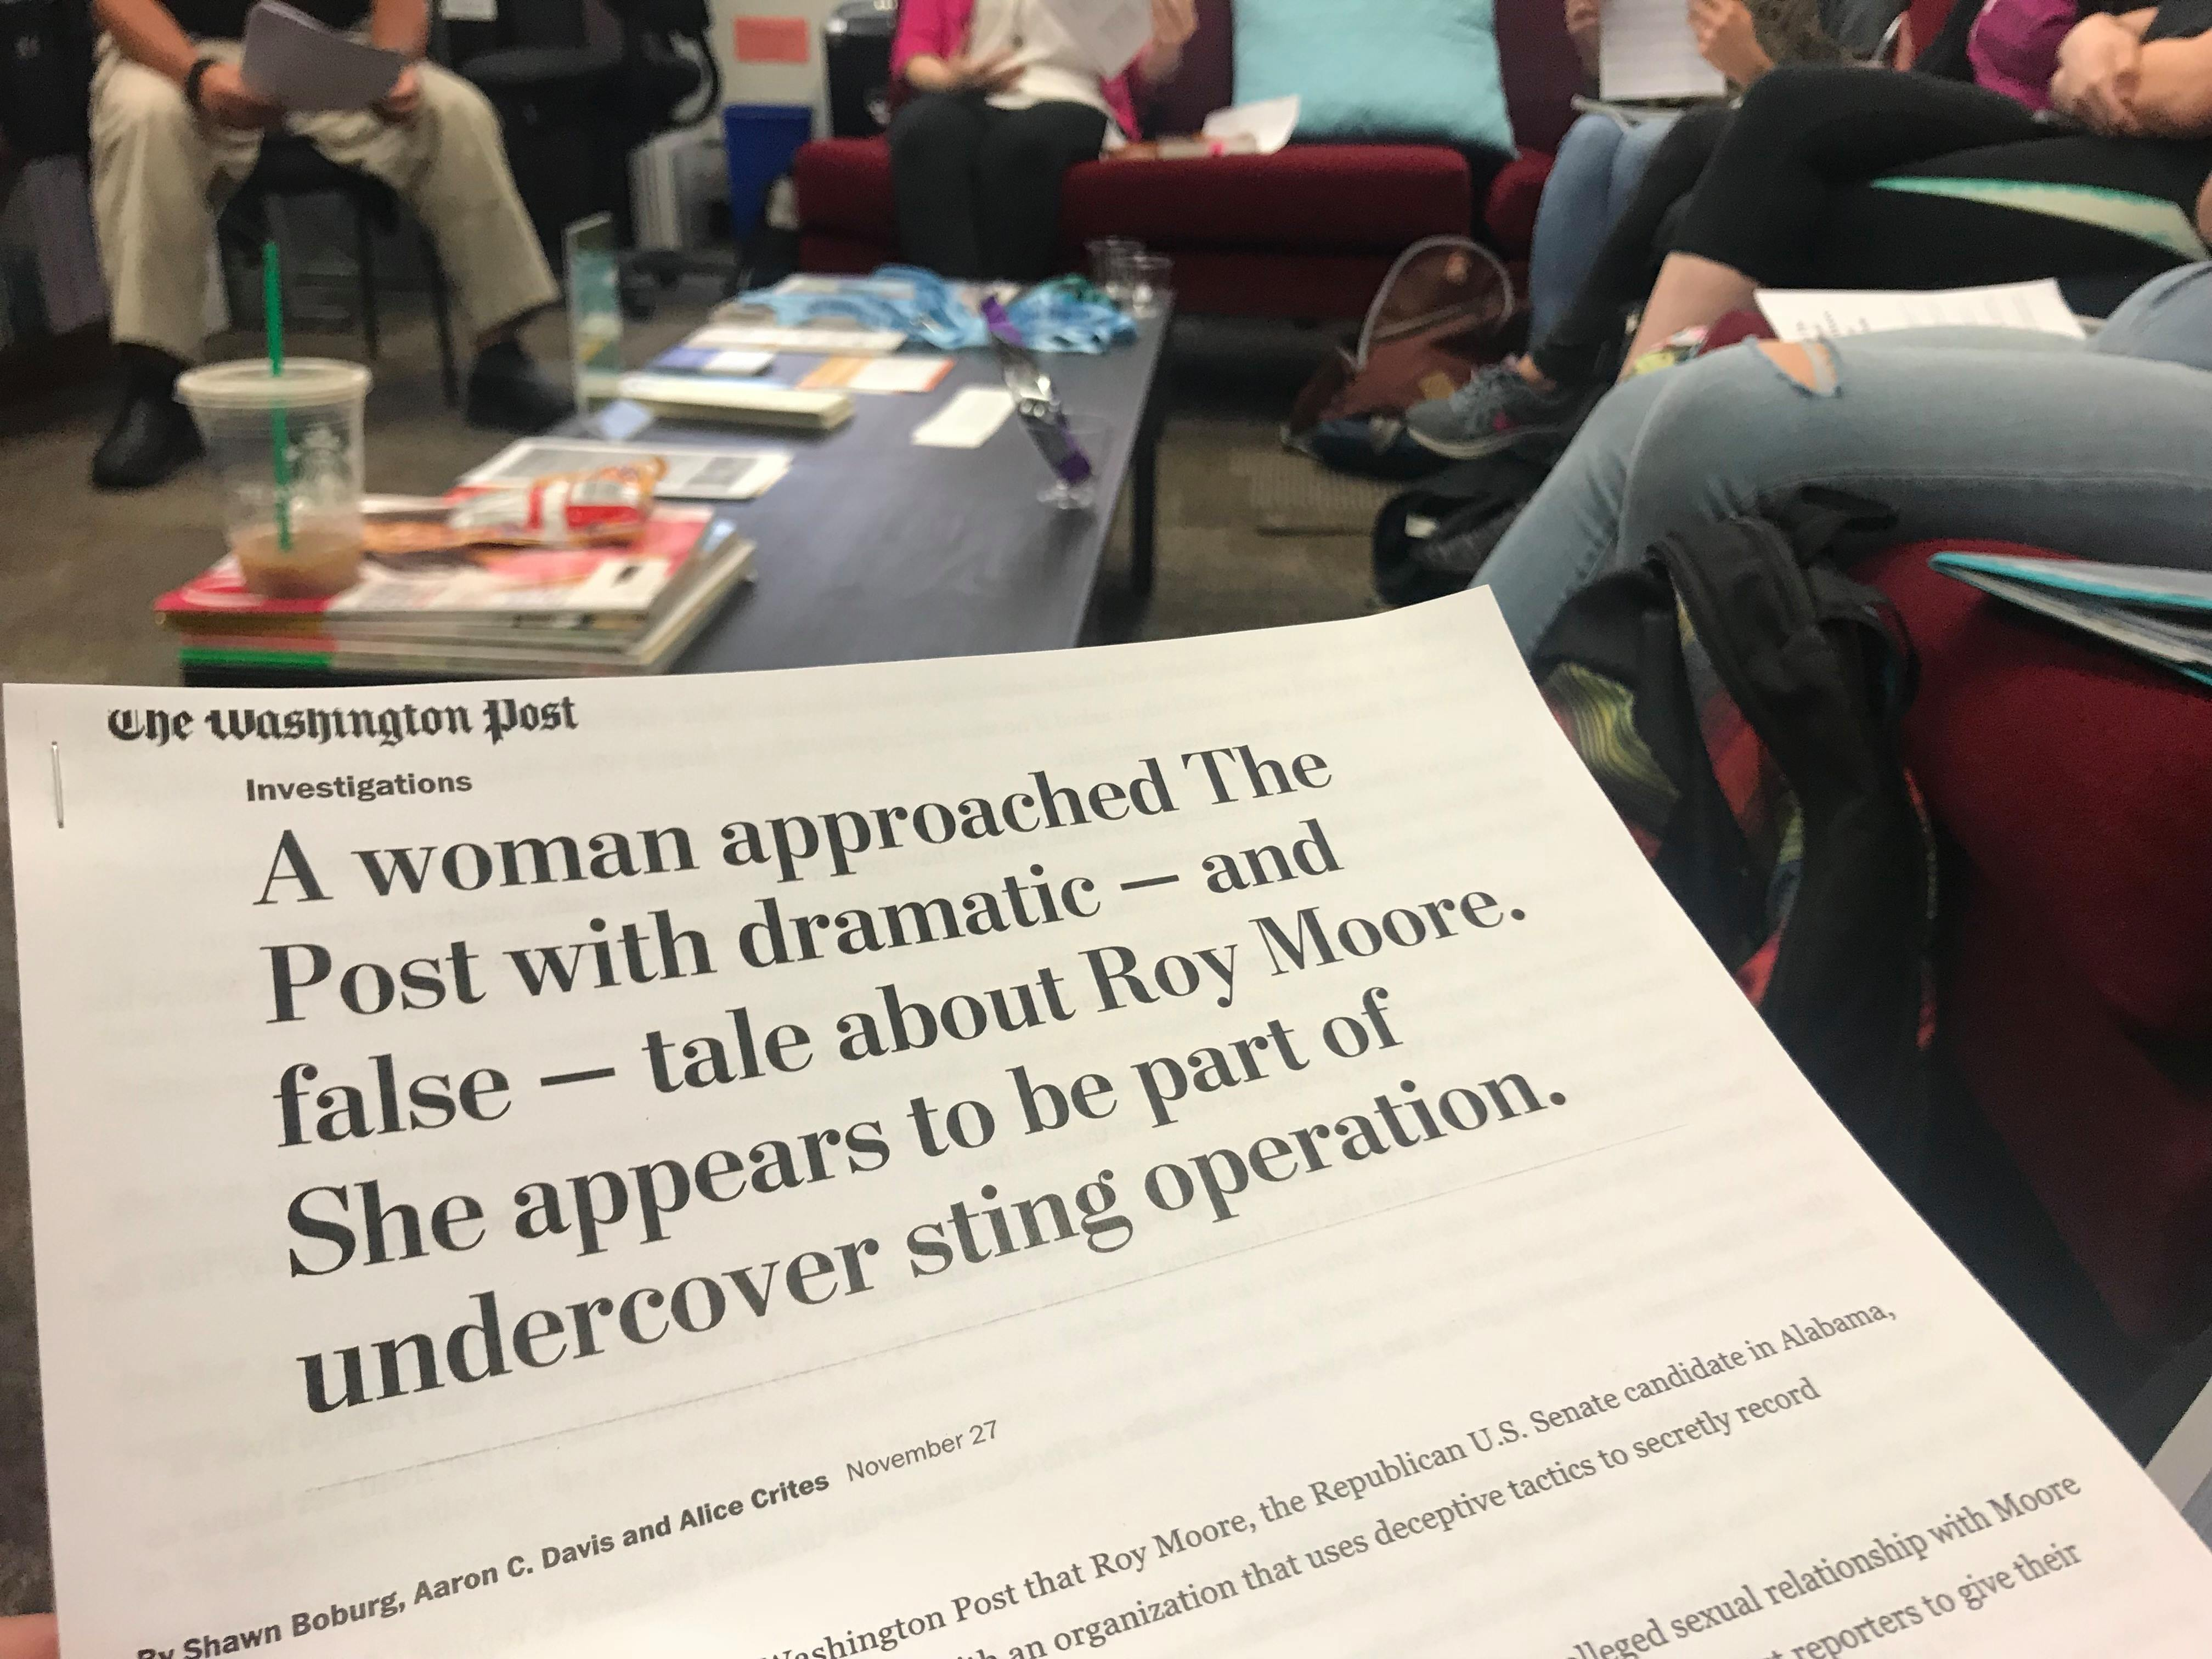 Photo of a Washington Post article used for the discussion.